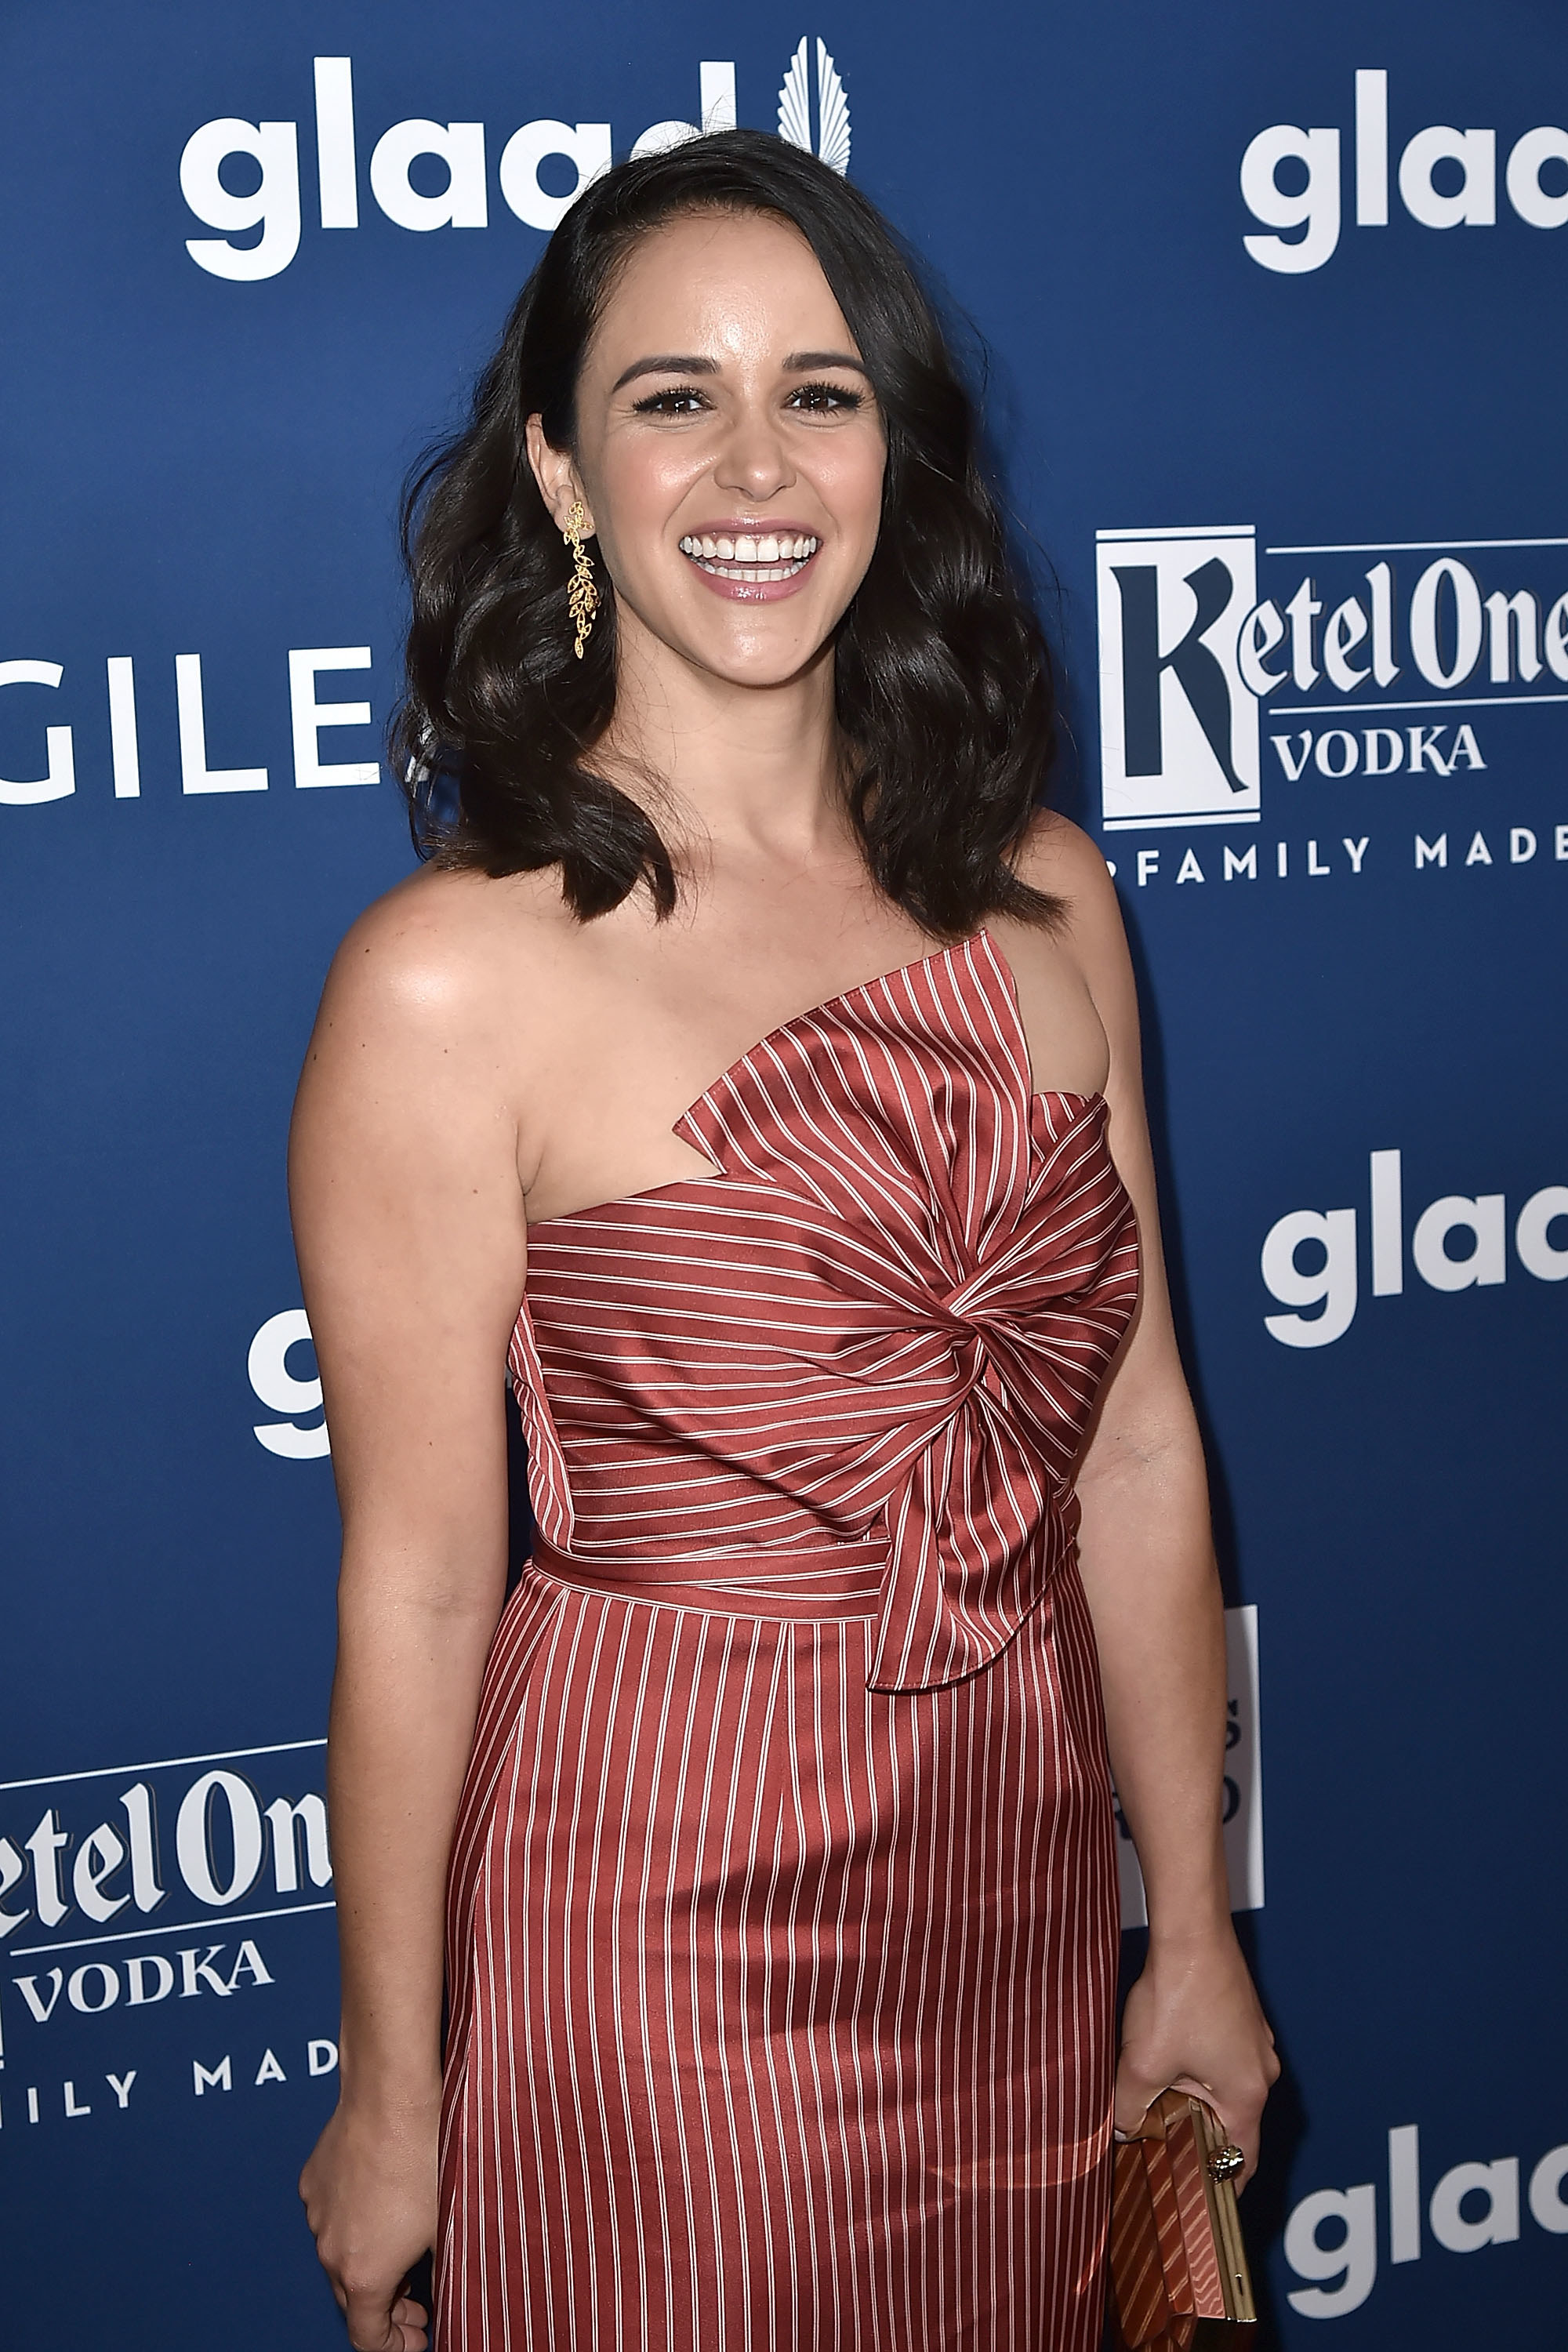 Melissa smiling at a red carpet event and wearing a striped strapless dress